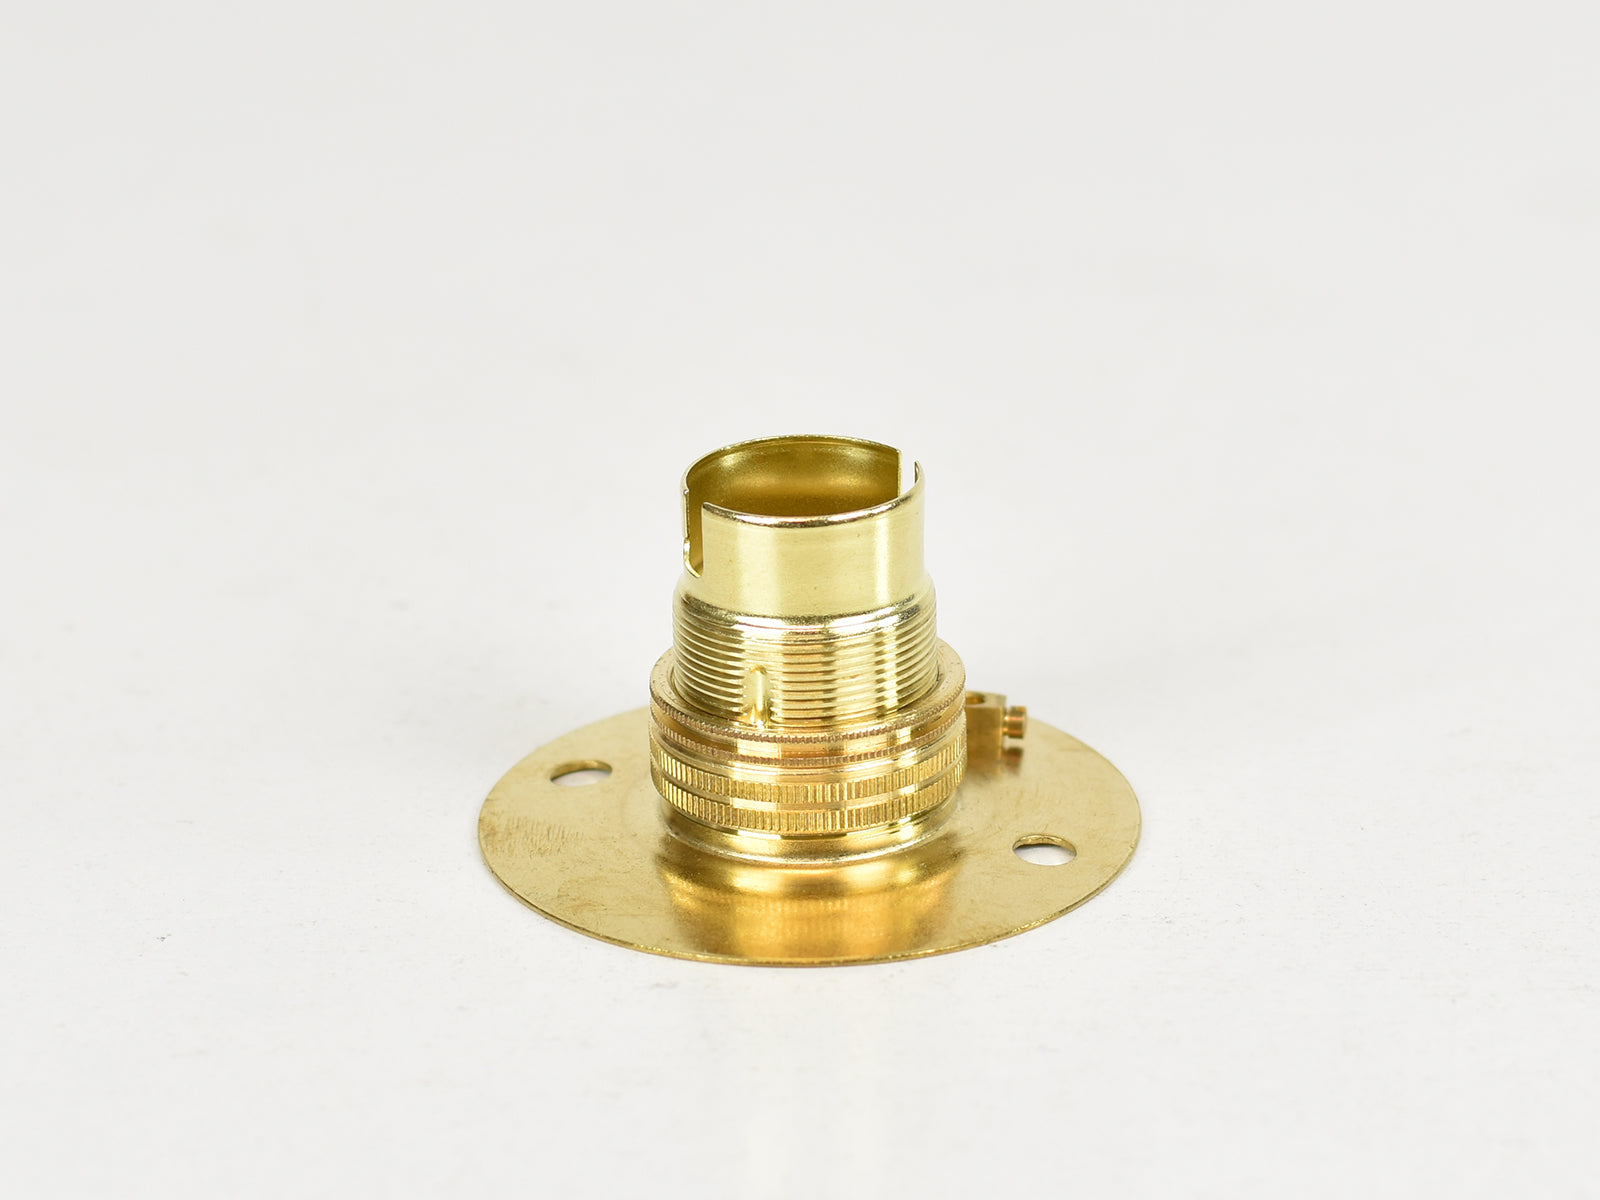 B22 Brass Bulb Holder | Batten Lamp Fitting | Threaded Brass - Vendimia Lighting Co.